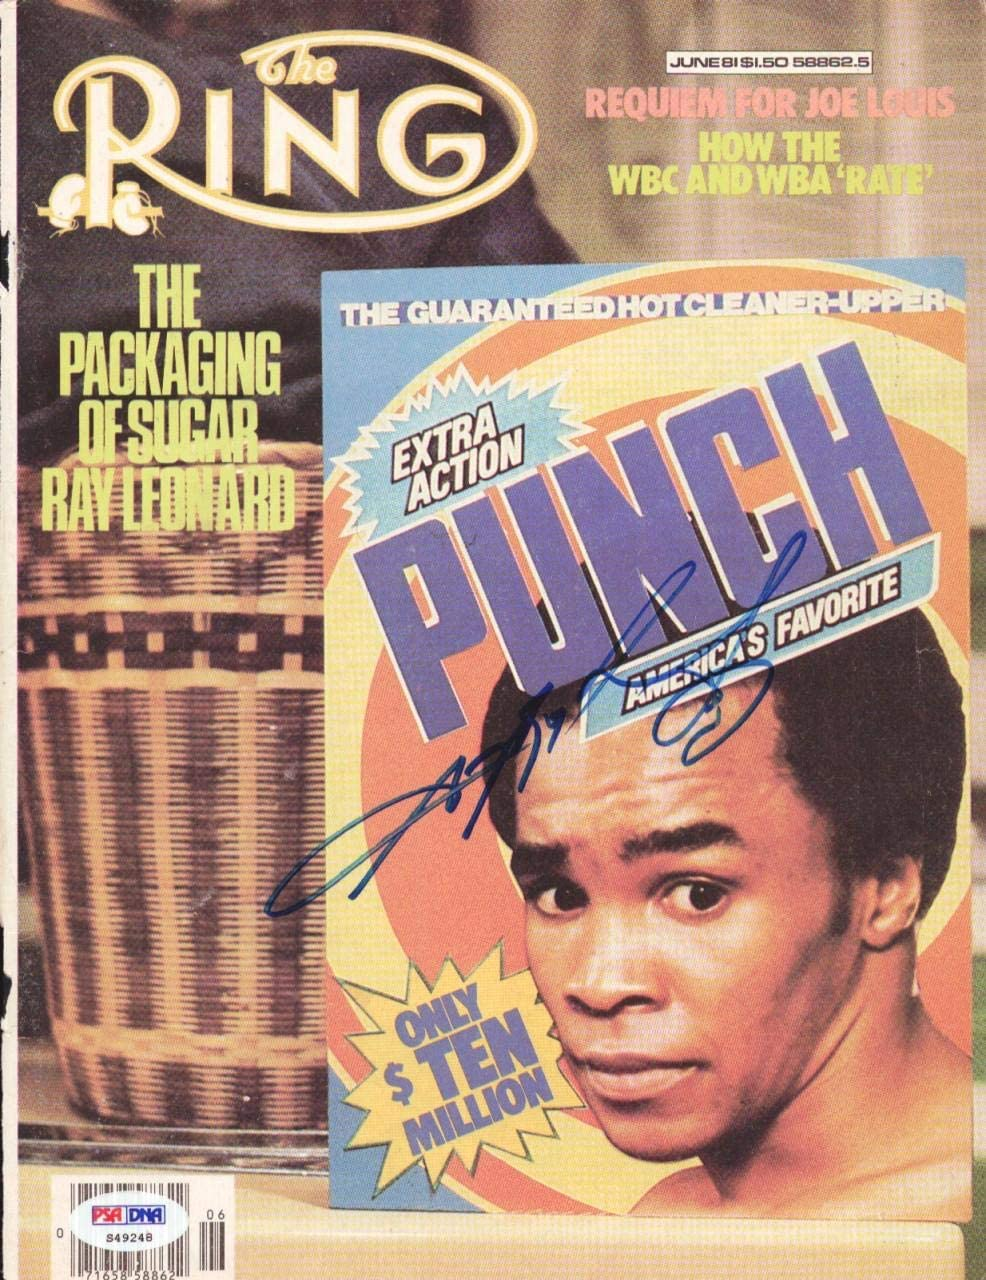 Sugar Ray Leonard Autographed The Ring Magazine Cover PSA/DNA #S49248 - Autographed Boxing Magazines